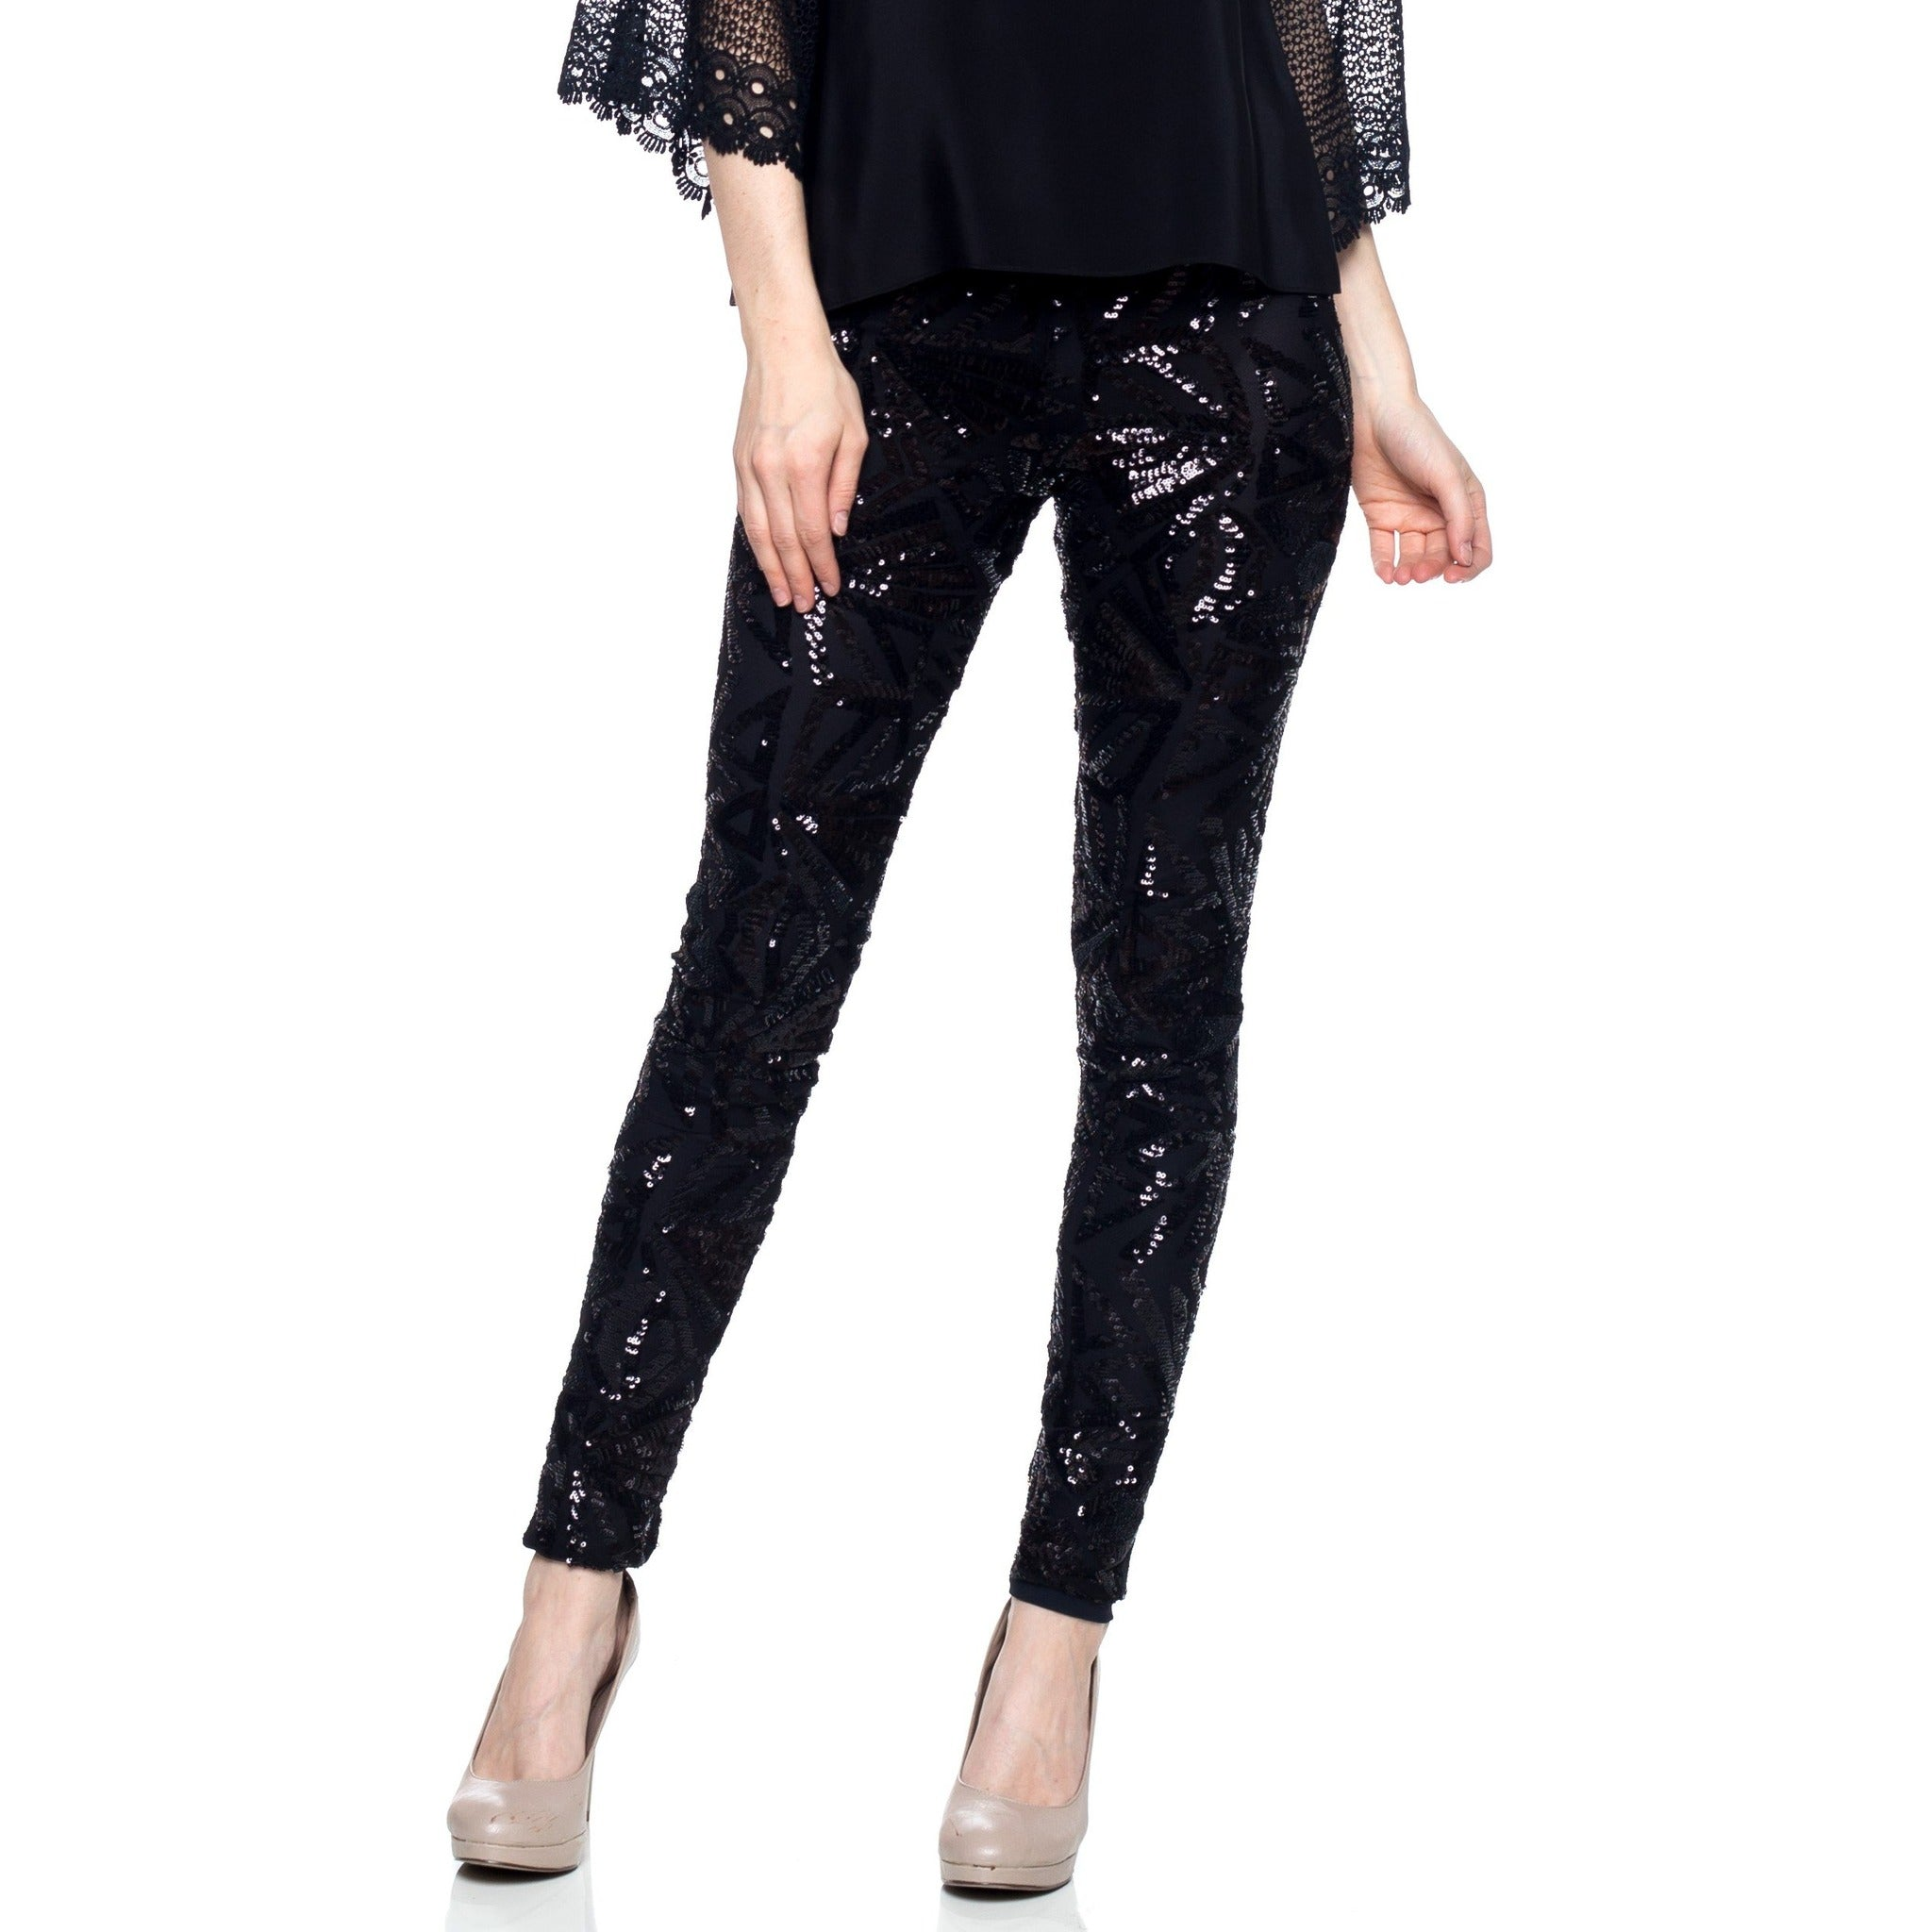 The very stylish 4 way stretch premium sequin leggings.   fully lined for a soft comfortable feel